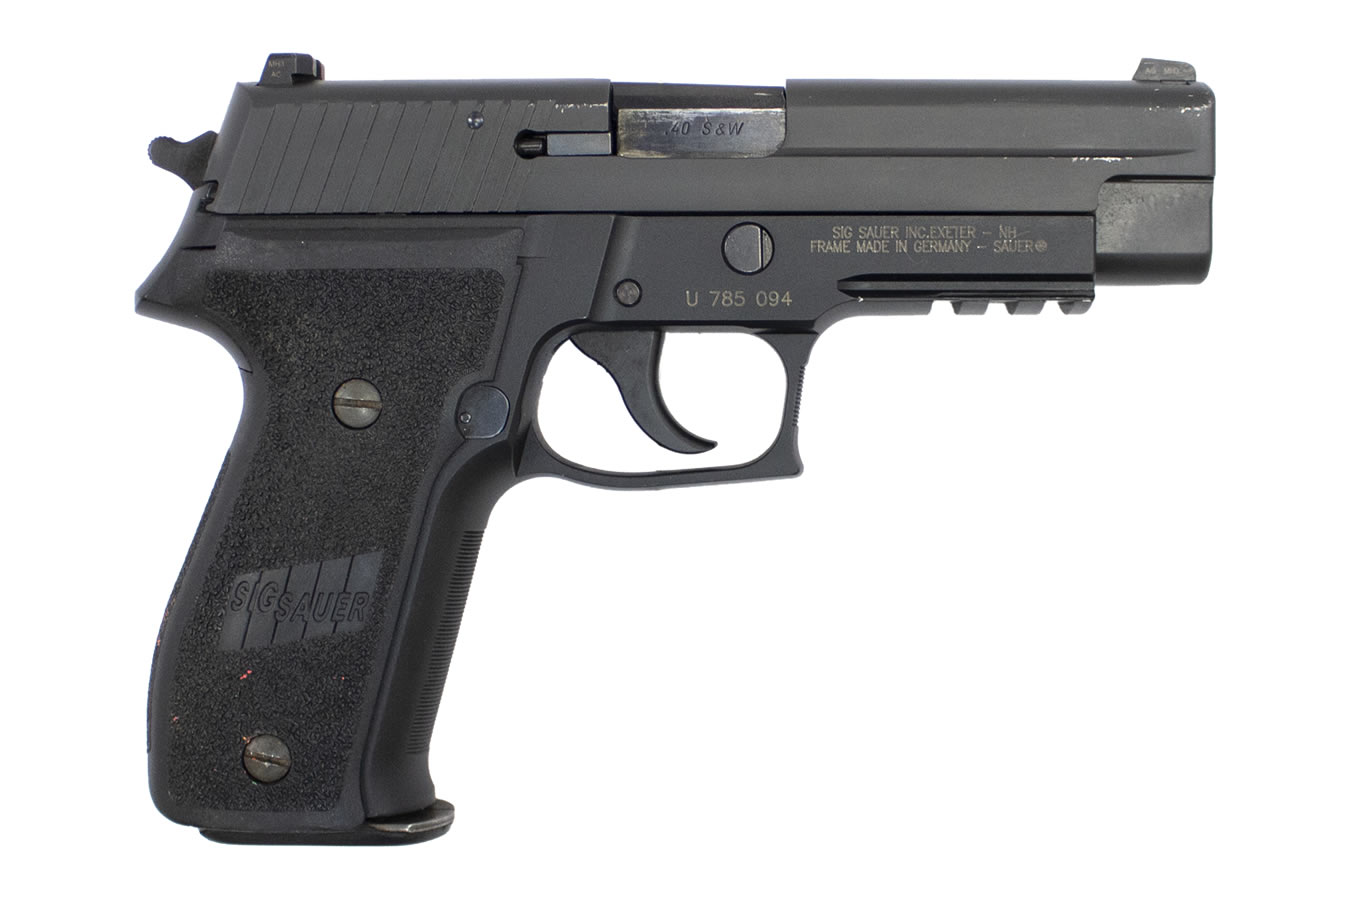 P226R 40SW USED FULL PISTOL WITH NIGHT SIGHTS AND 12 RD MAG